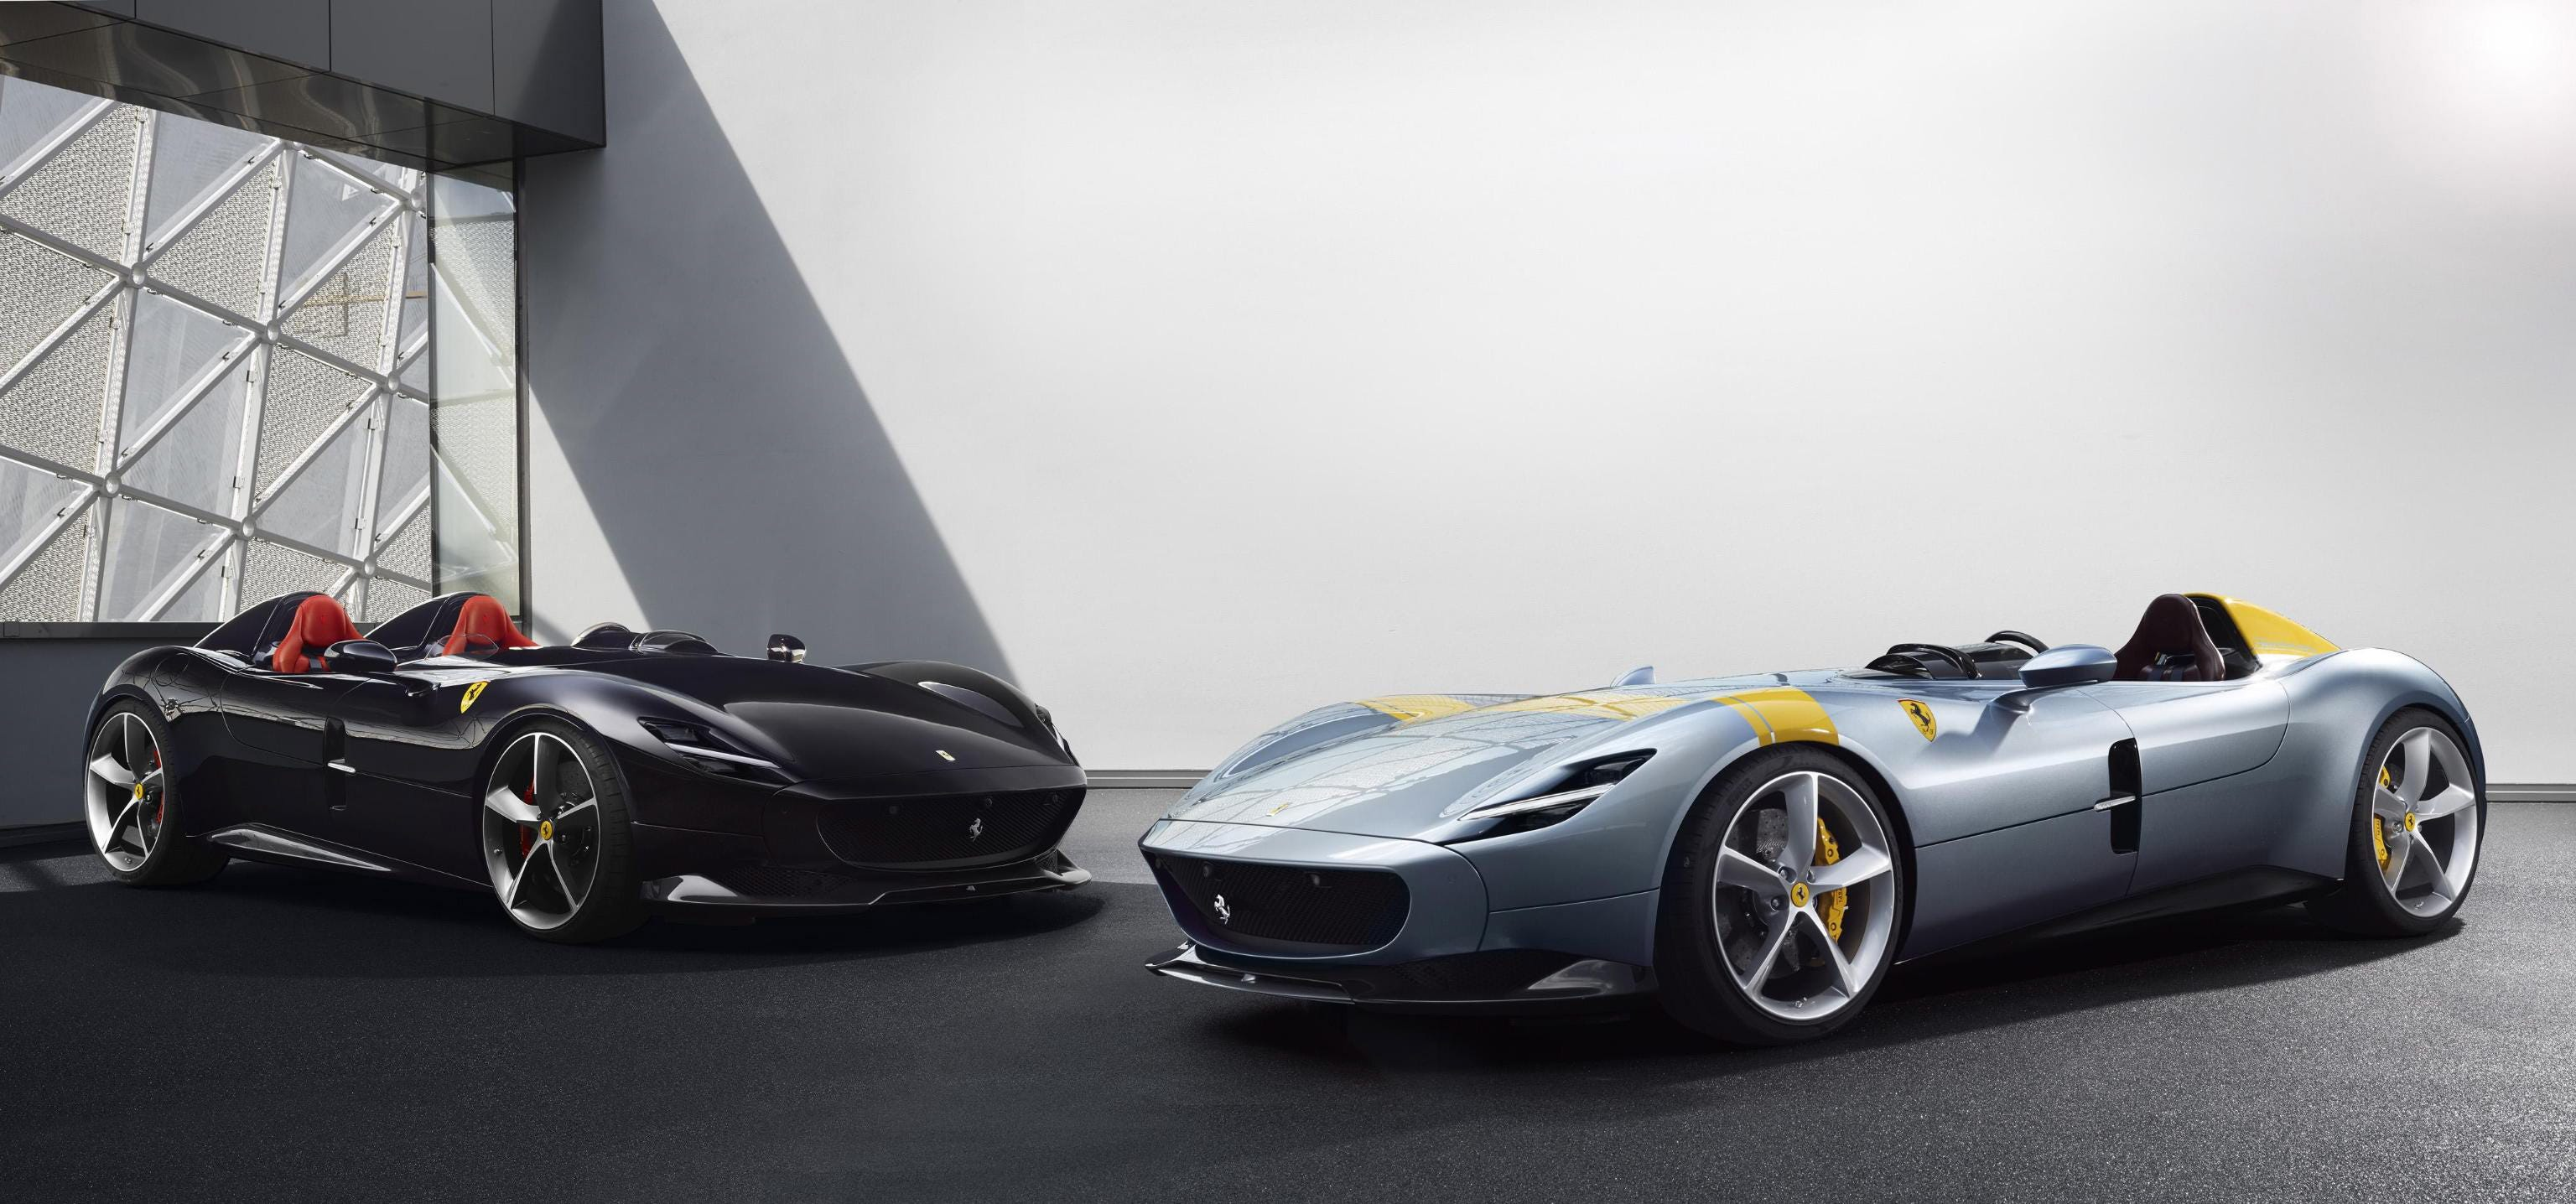 A photo made available by the Ferrari Press Office shows new supercar Ferrari  SP1, right, and SP2 on display in Maranello, Italy on Sept. 18, 2018. Ferrari will launch 15 new models between 2019 and 2020 and then its eagerly anticipated Purosangue (Thoroughbred) SUV in 2022, the Italian glamour sportscar maker said on  September 18.